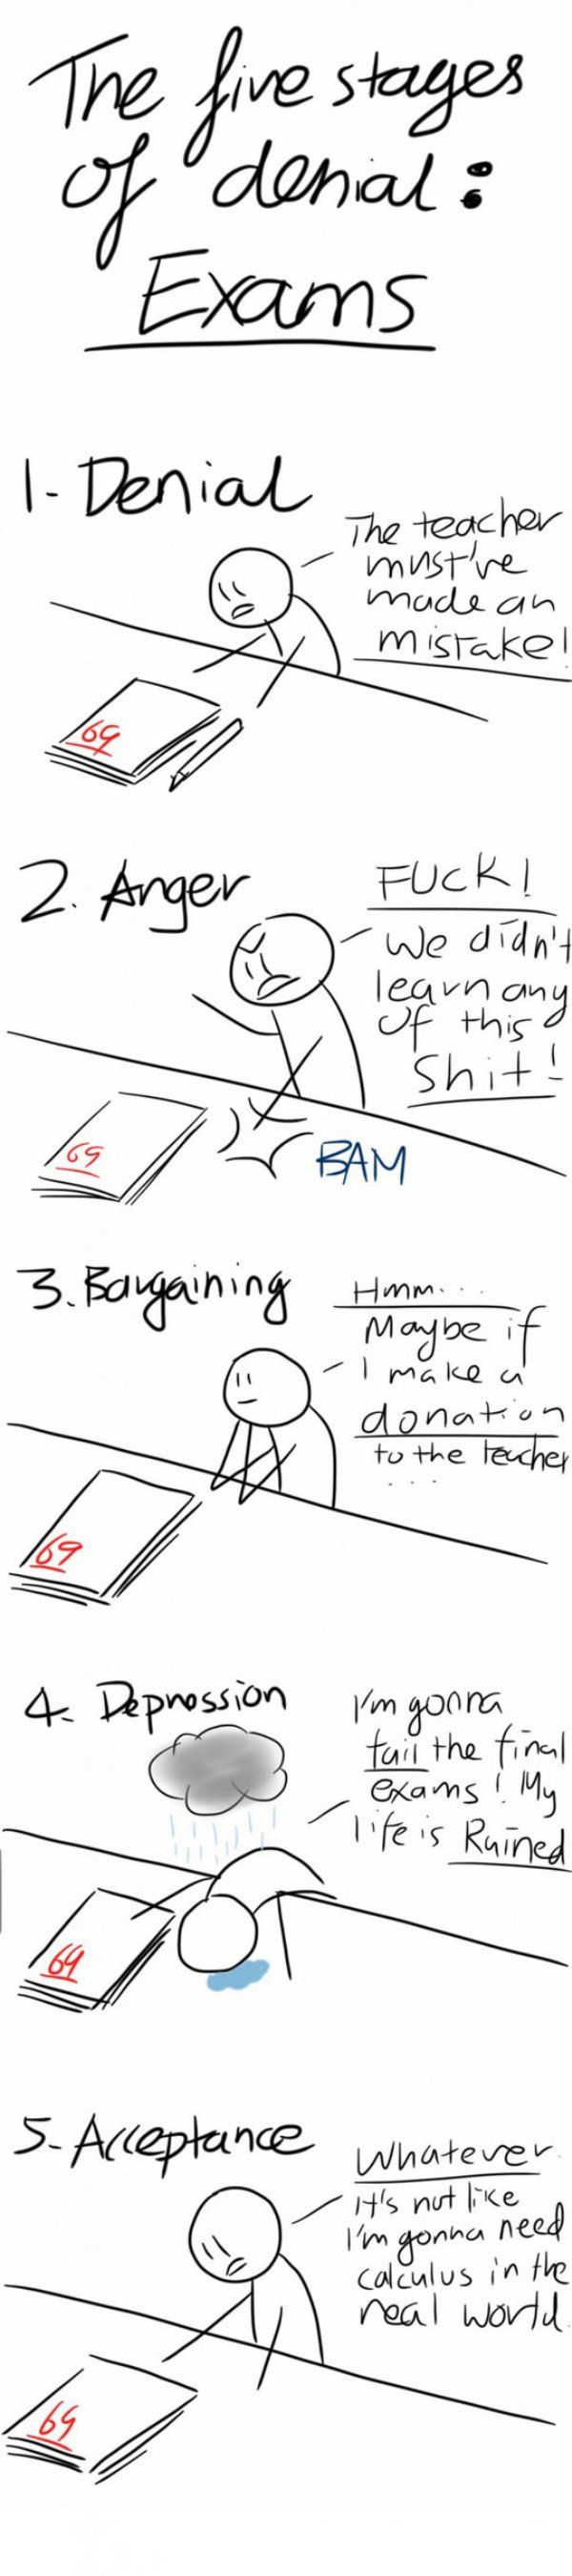 5 Stages  // funny pictures - funny photos - funny images - funny pics - funny quotes - #lol #humor #funnypictures